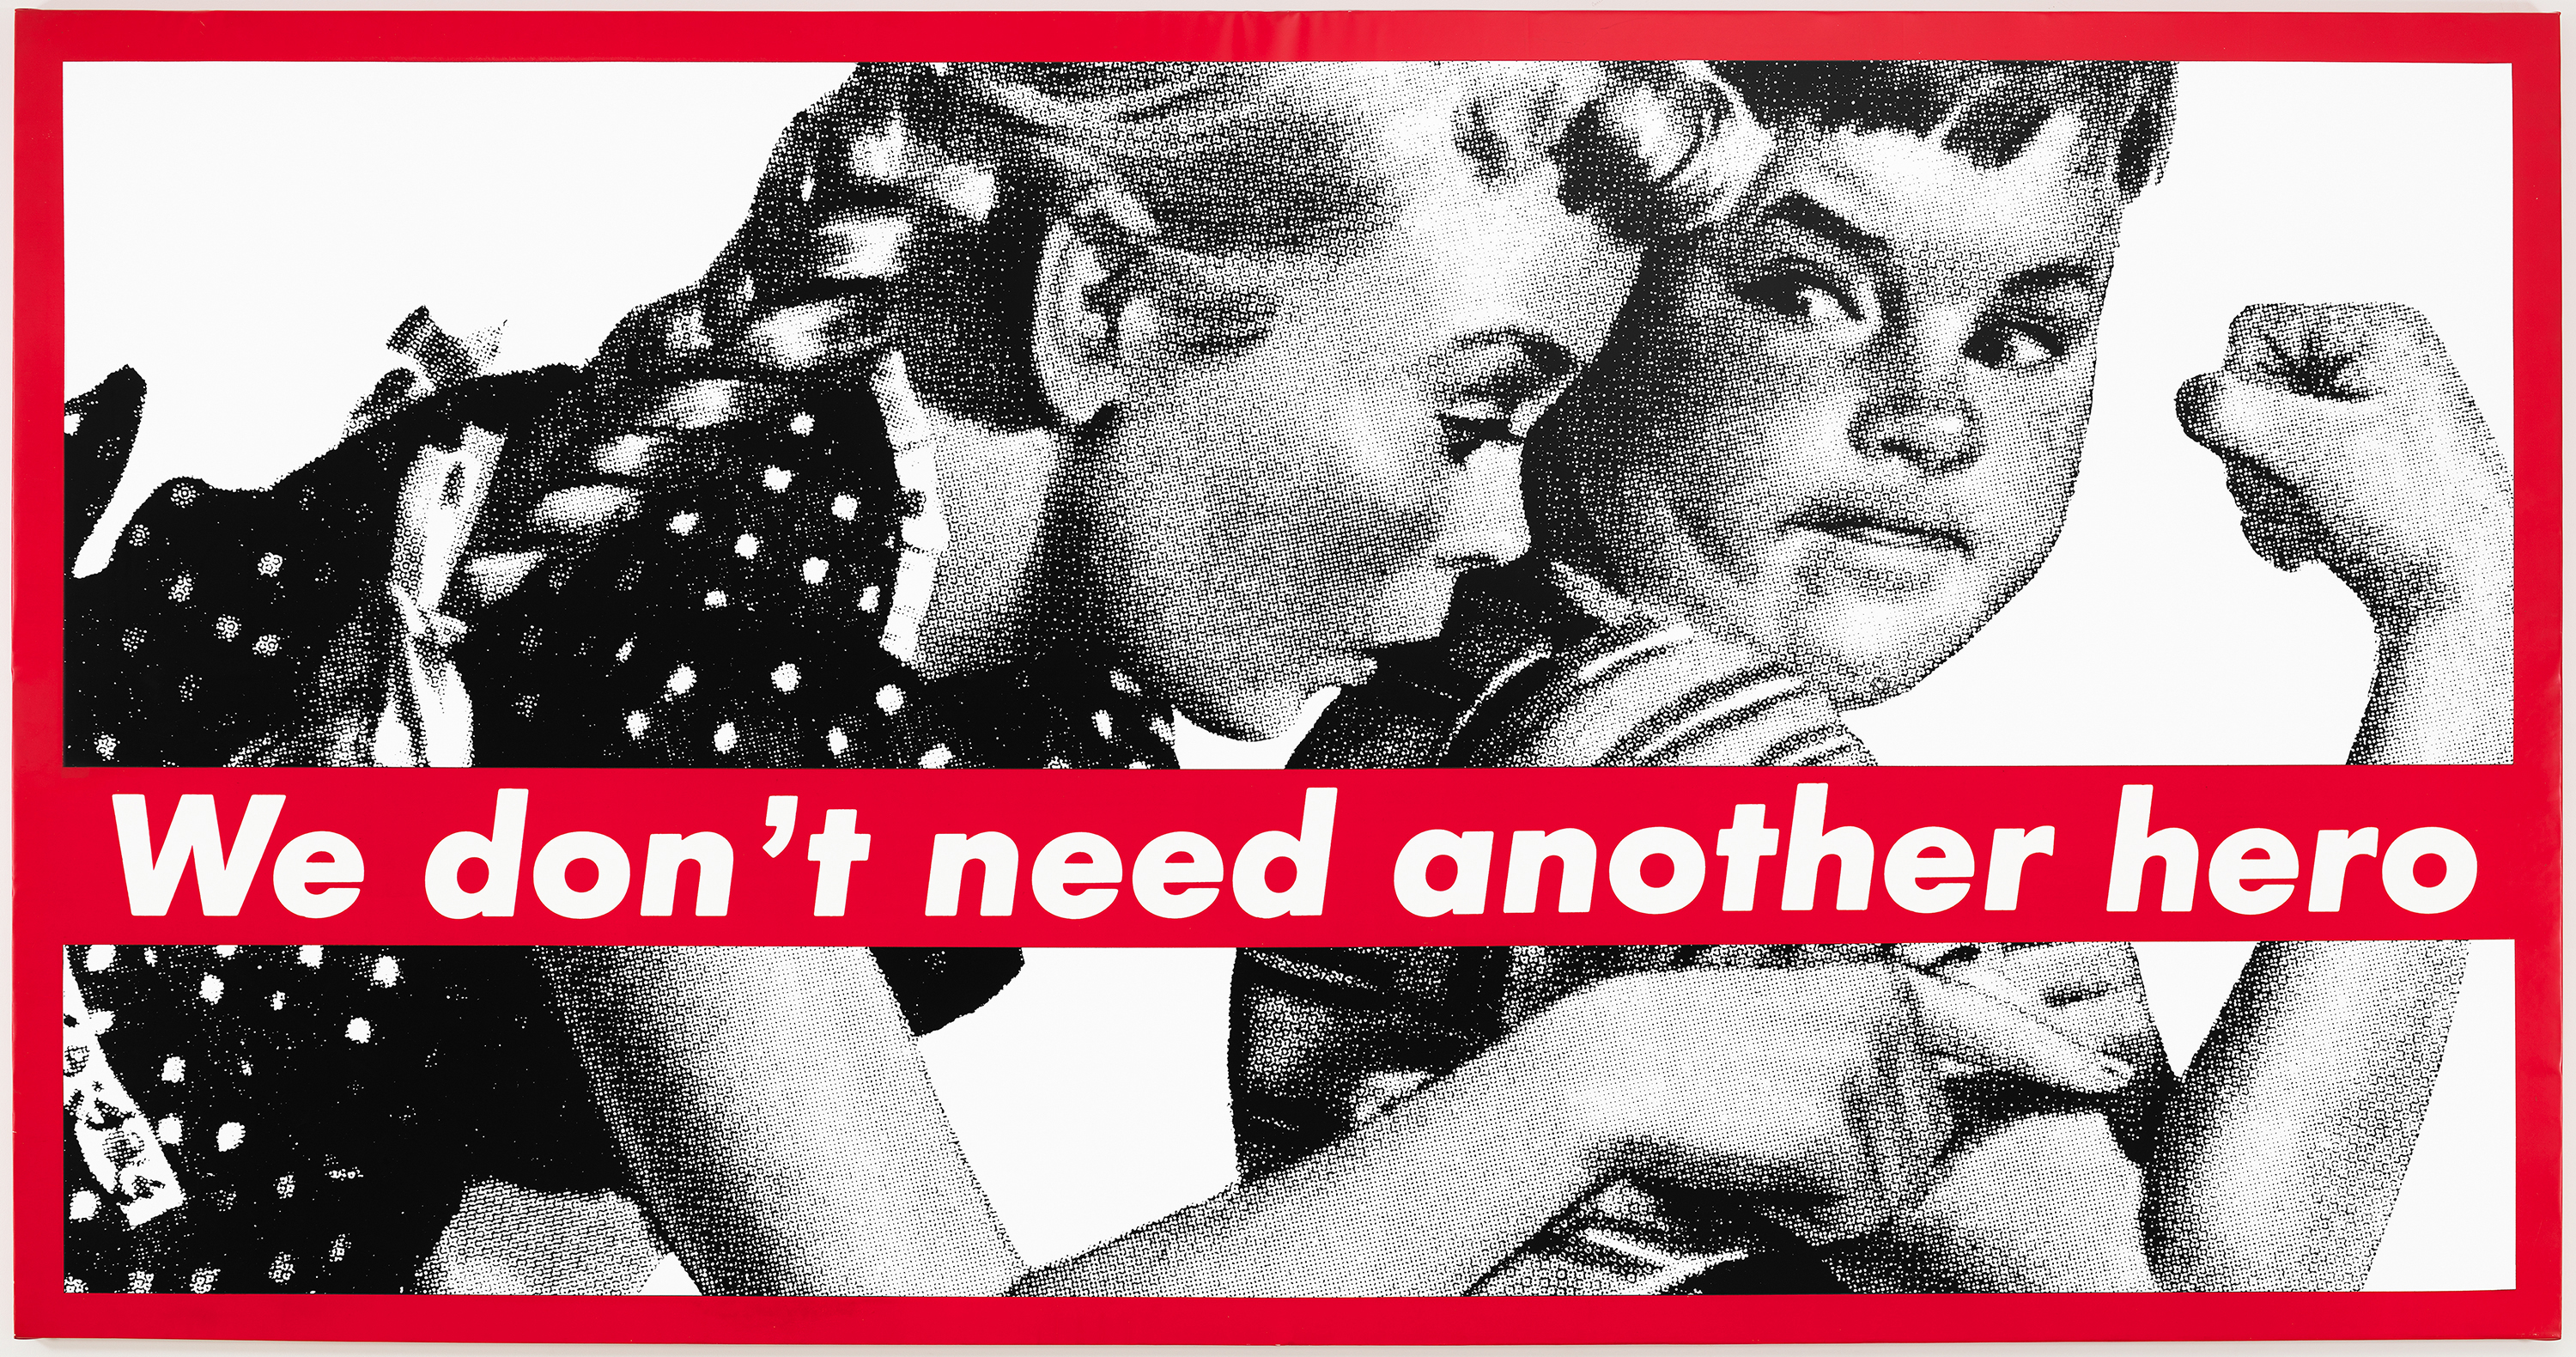 Barbara Kruger Untitled (We don't need another hero), 1987